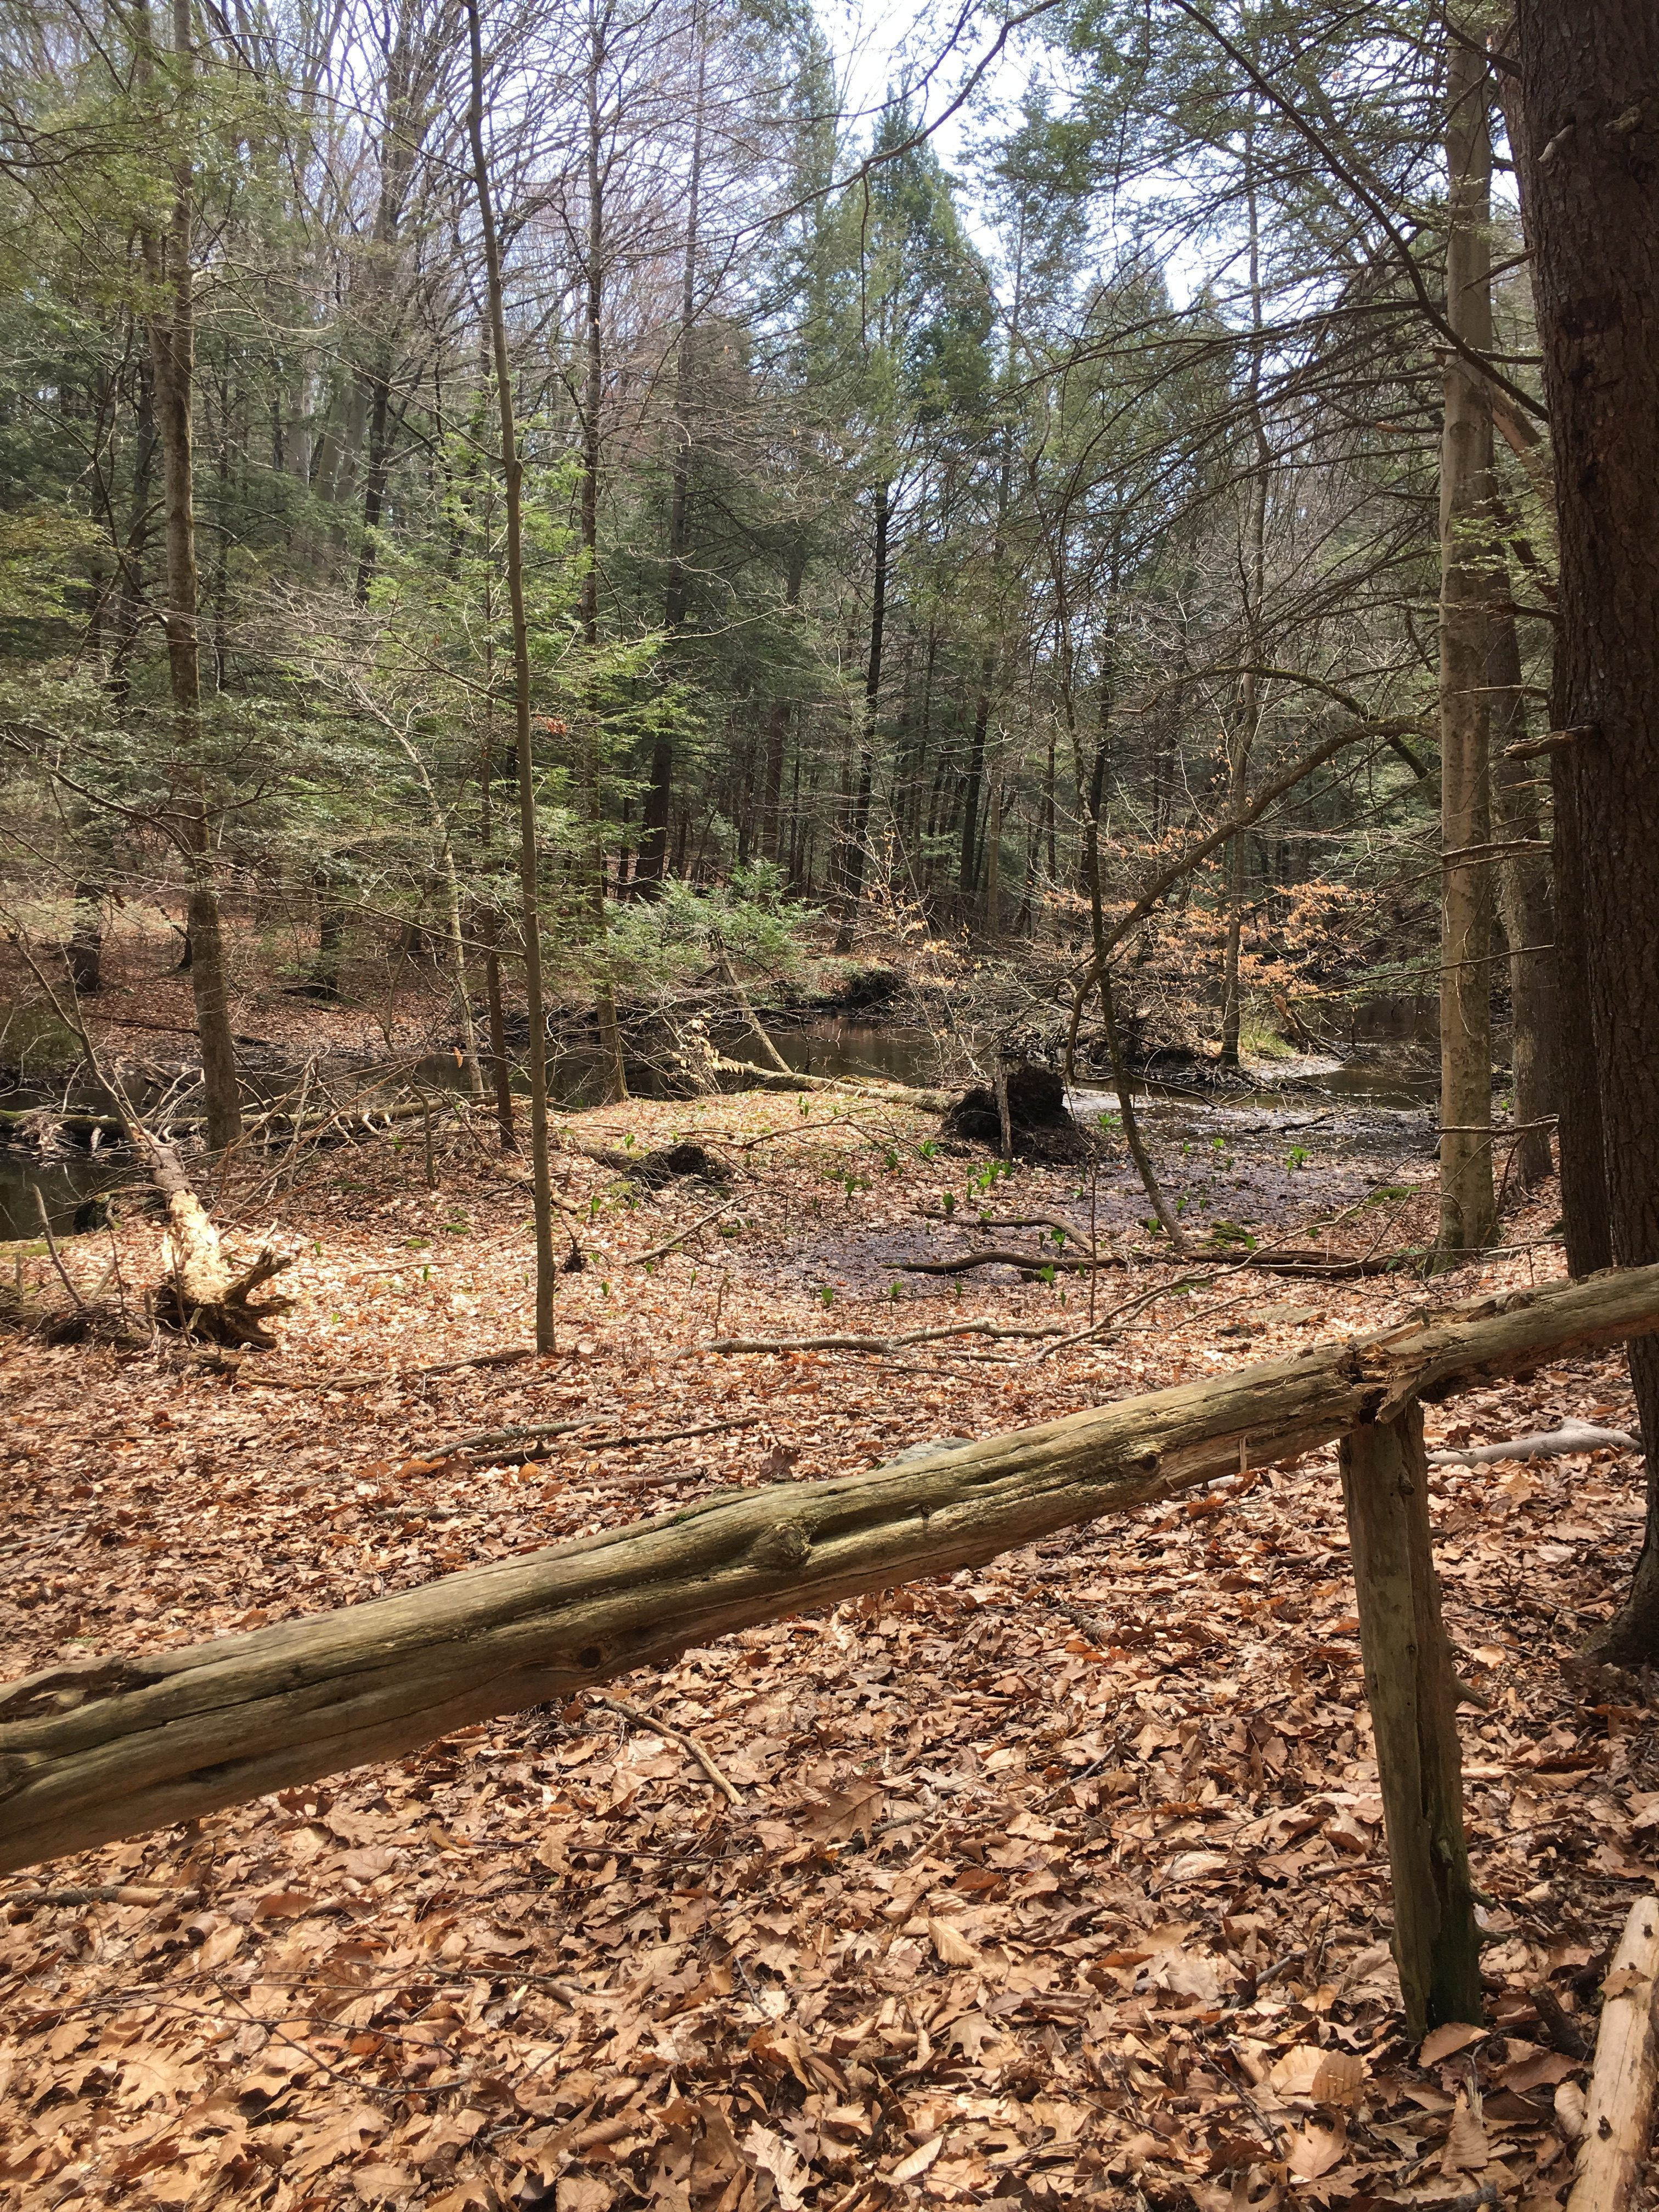 Hiking the Mianus River Gorge Preserve with Kids